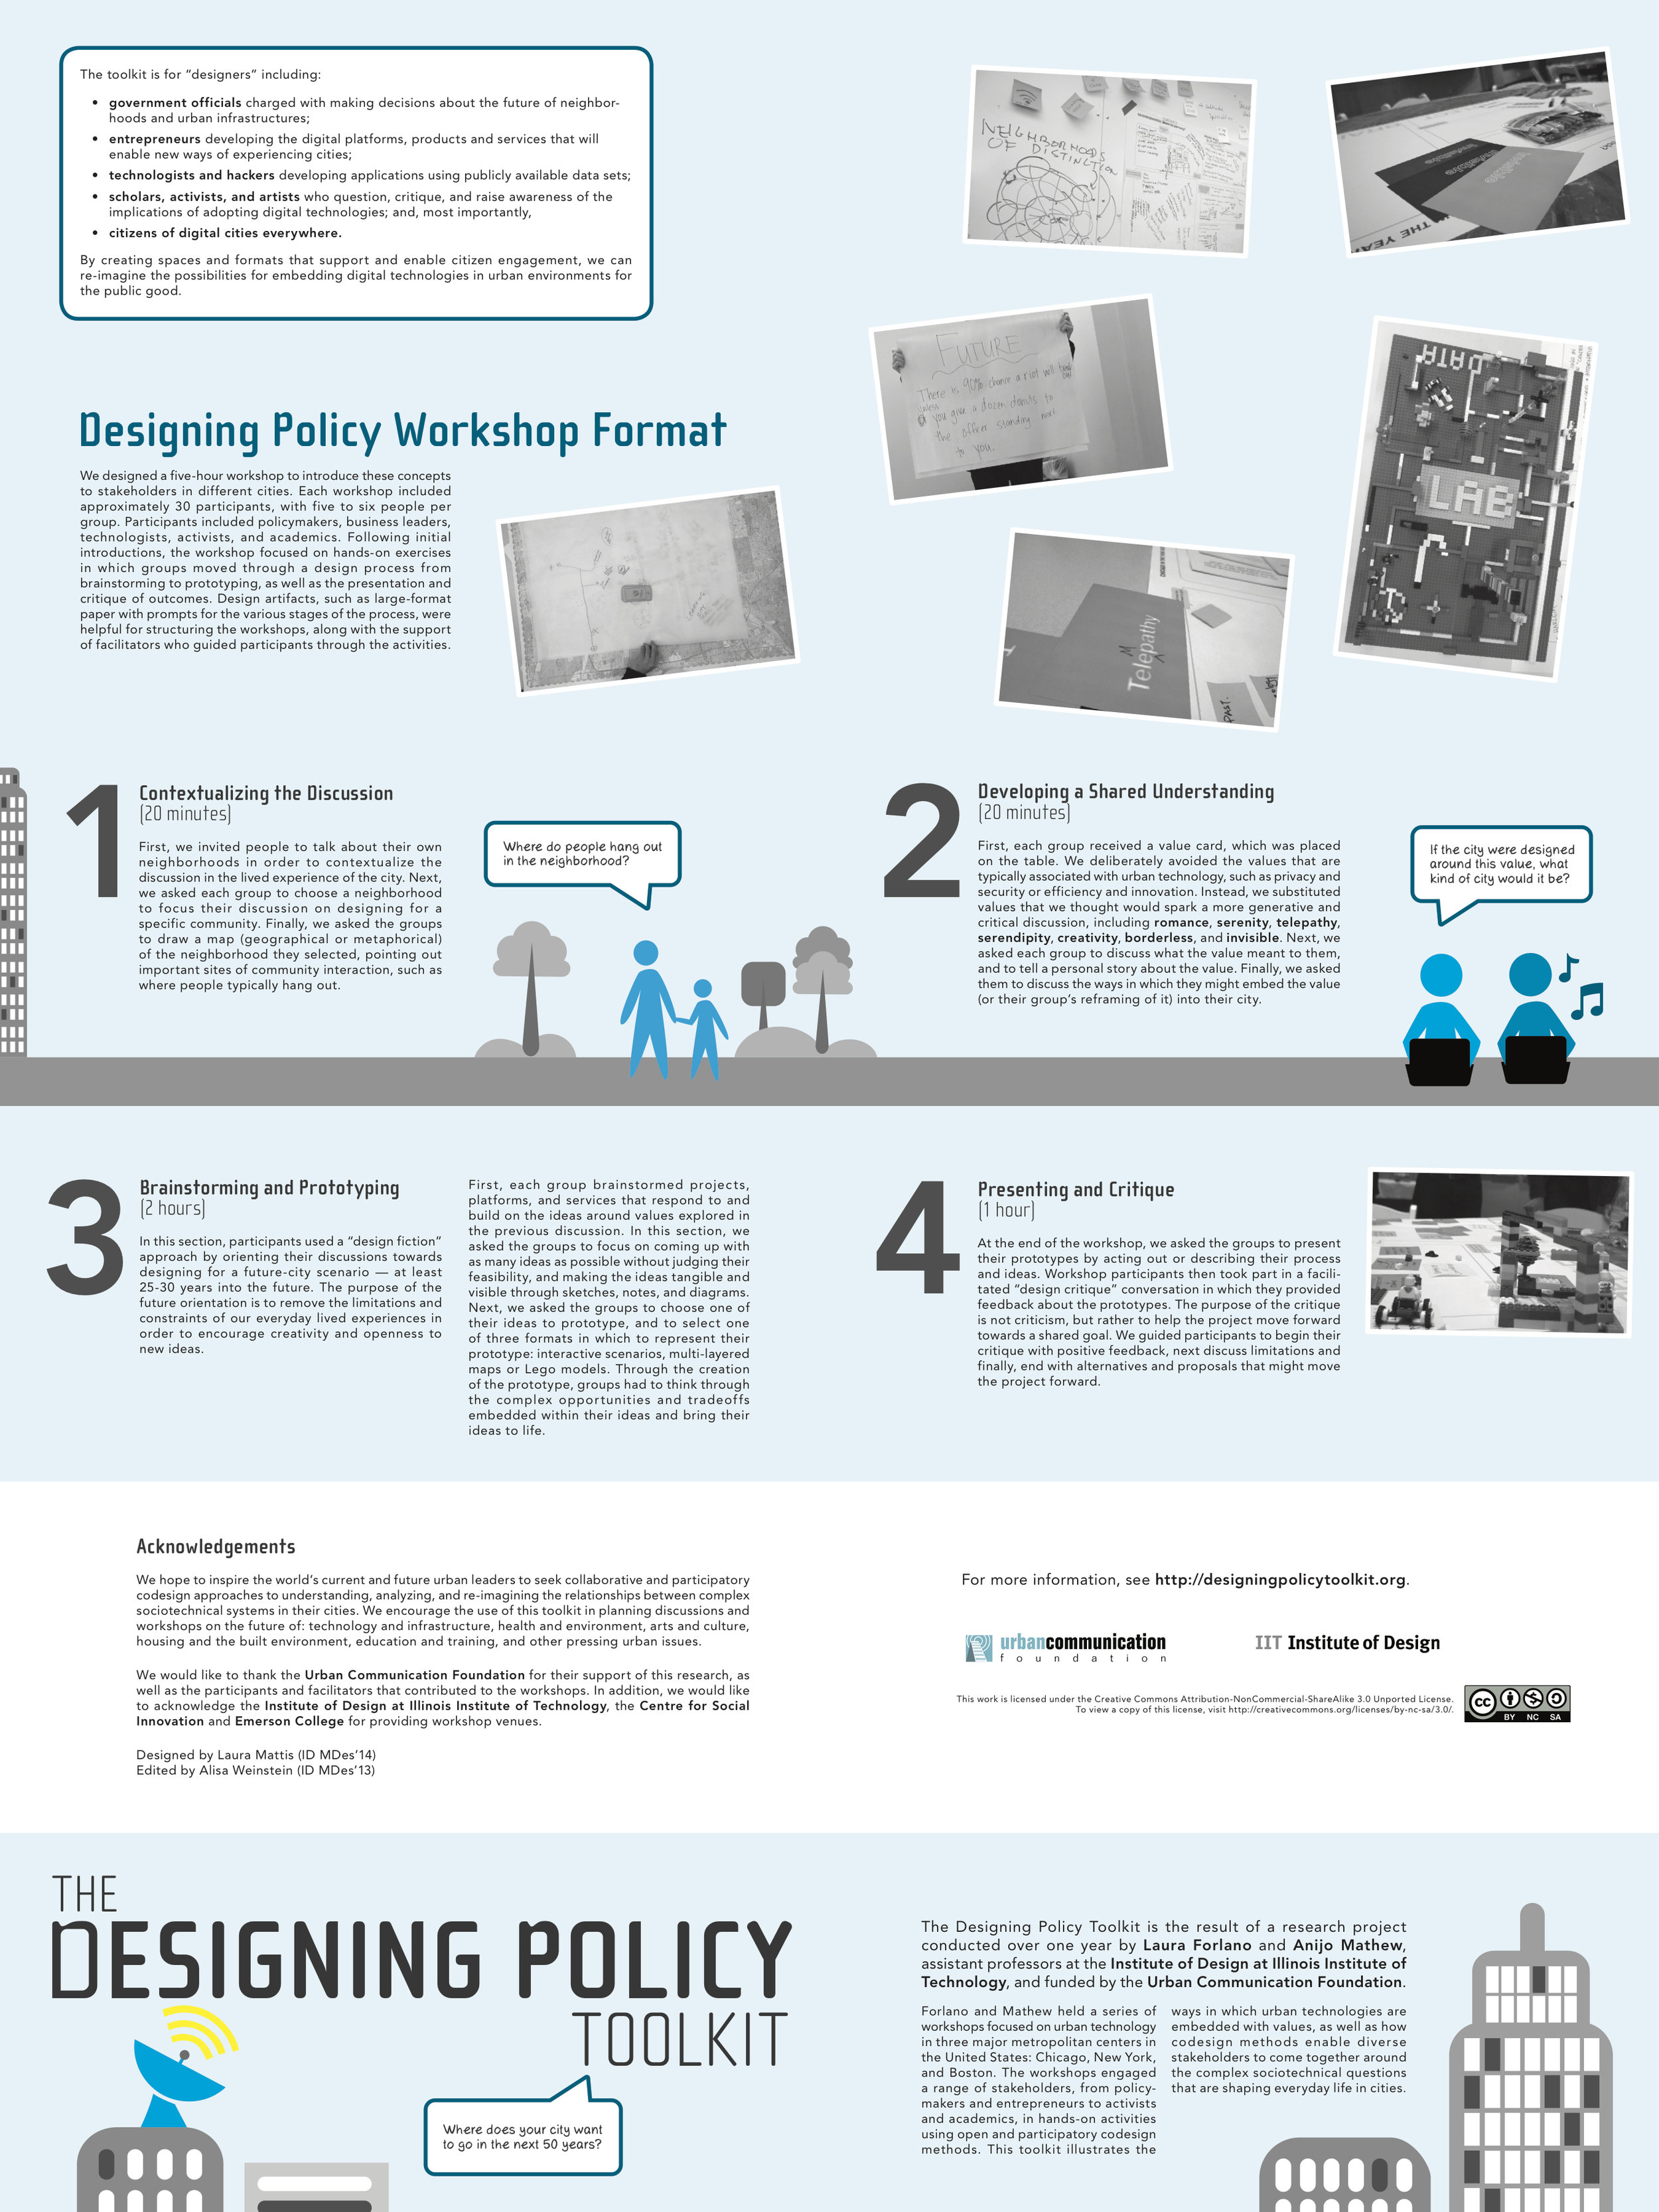 Designing Policy toolkit back describing the project and how to execute workshops